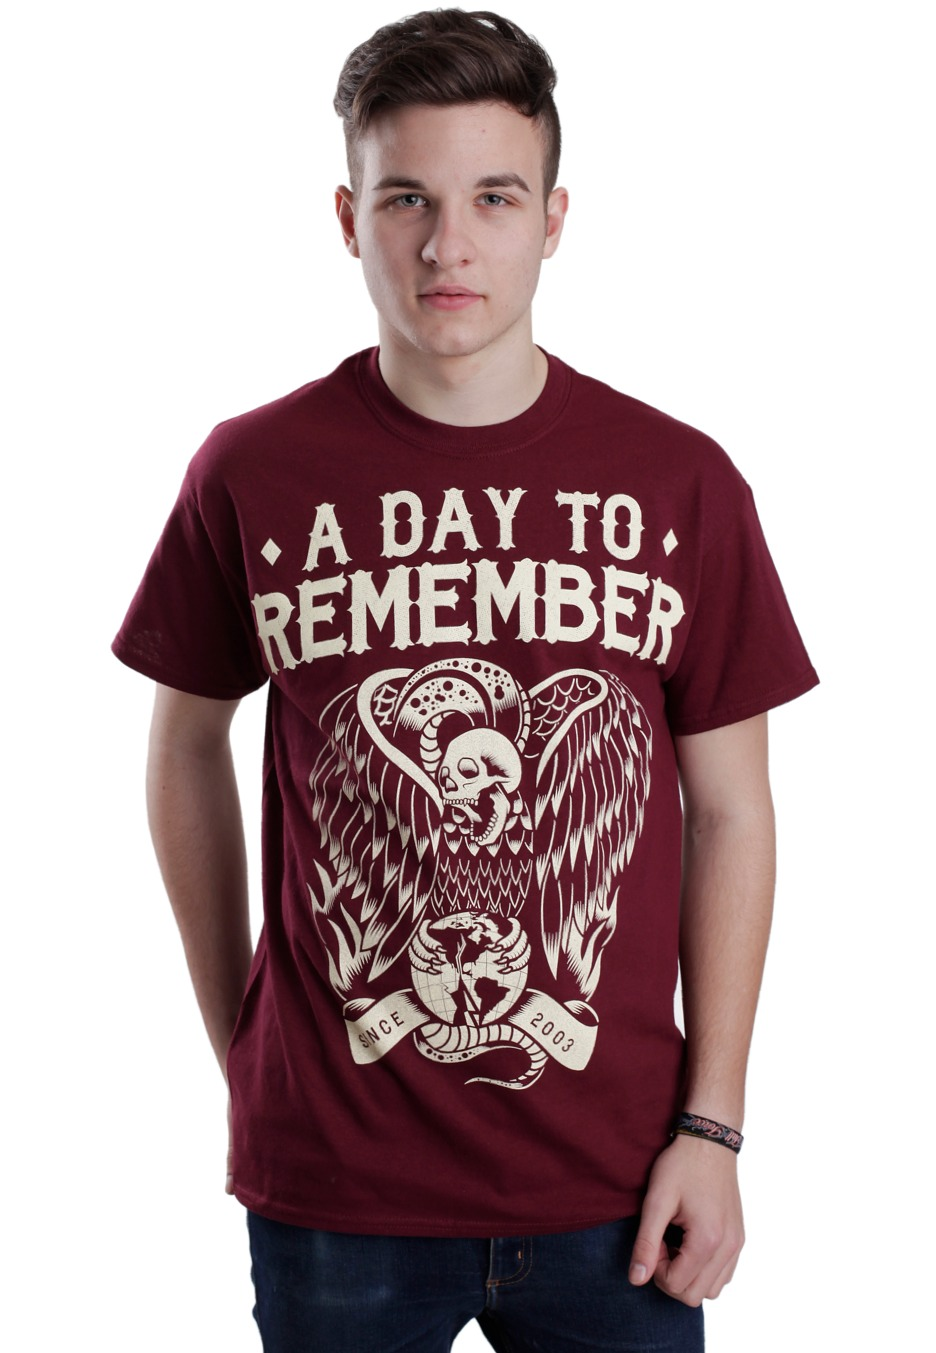 a day to remember I remember lyrics by a day to remember: i'd never wish any of this on anyone or anything / aw come on, you gotta try and look at things.